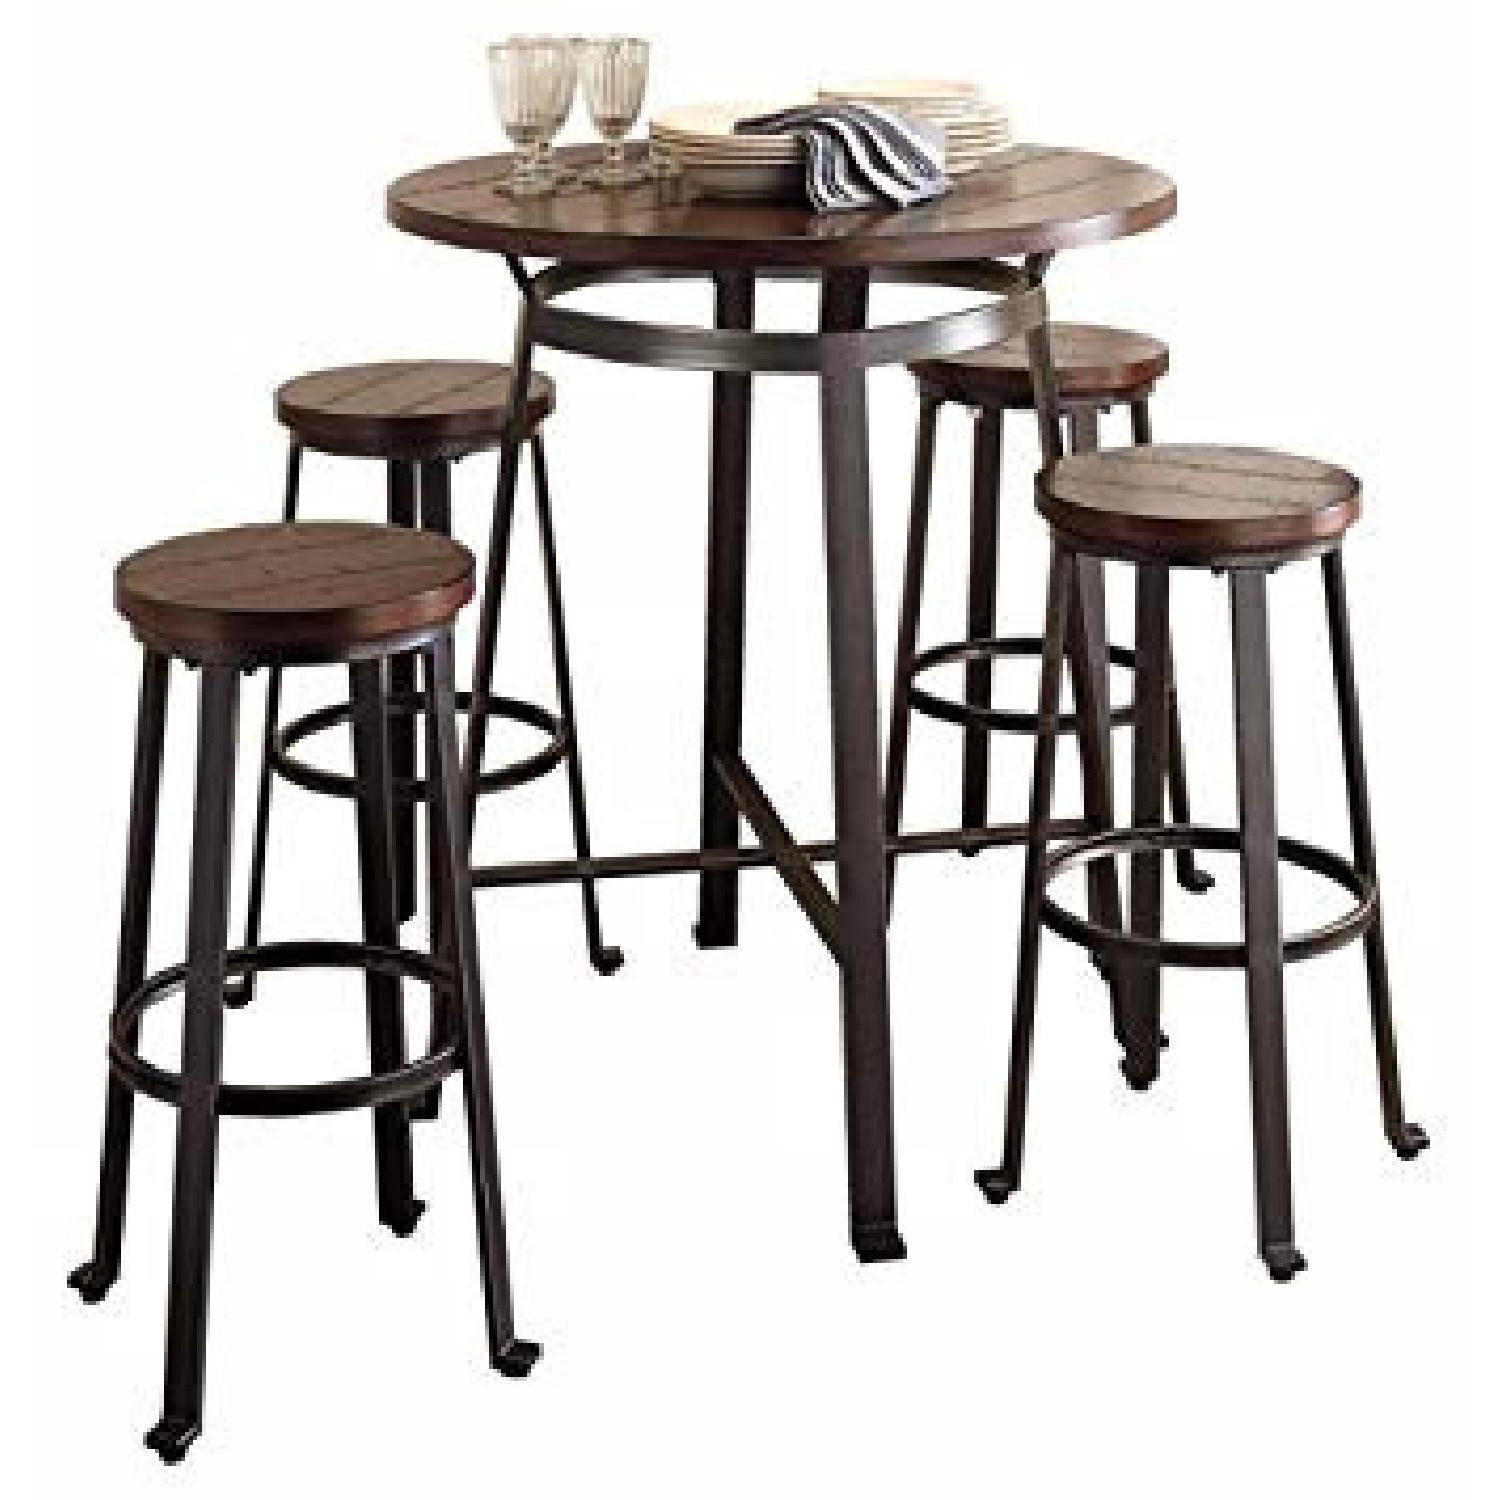 Ashley Challiman Pub Height Dining Table w/ 4 Stools - image-0